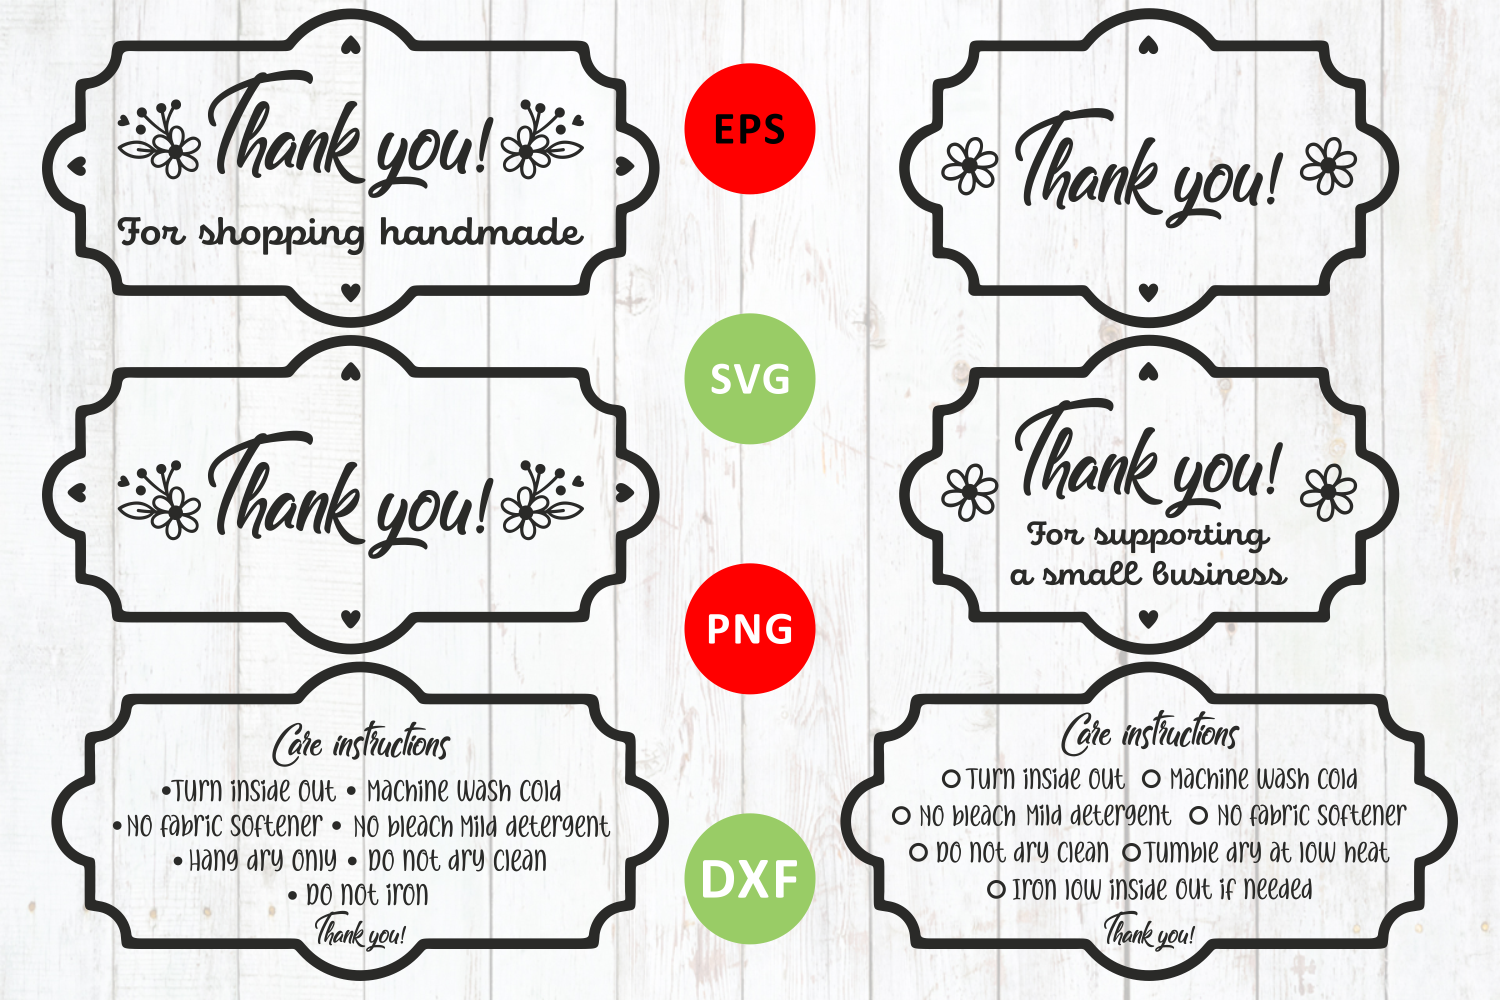 Thank You Svg And Washing Instruction Svg By Zoya Miller Svg